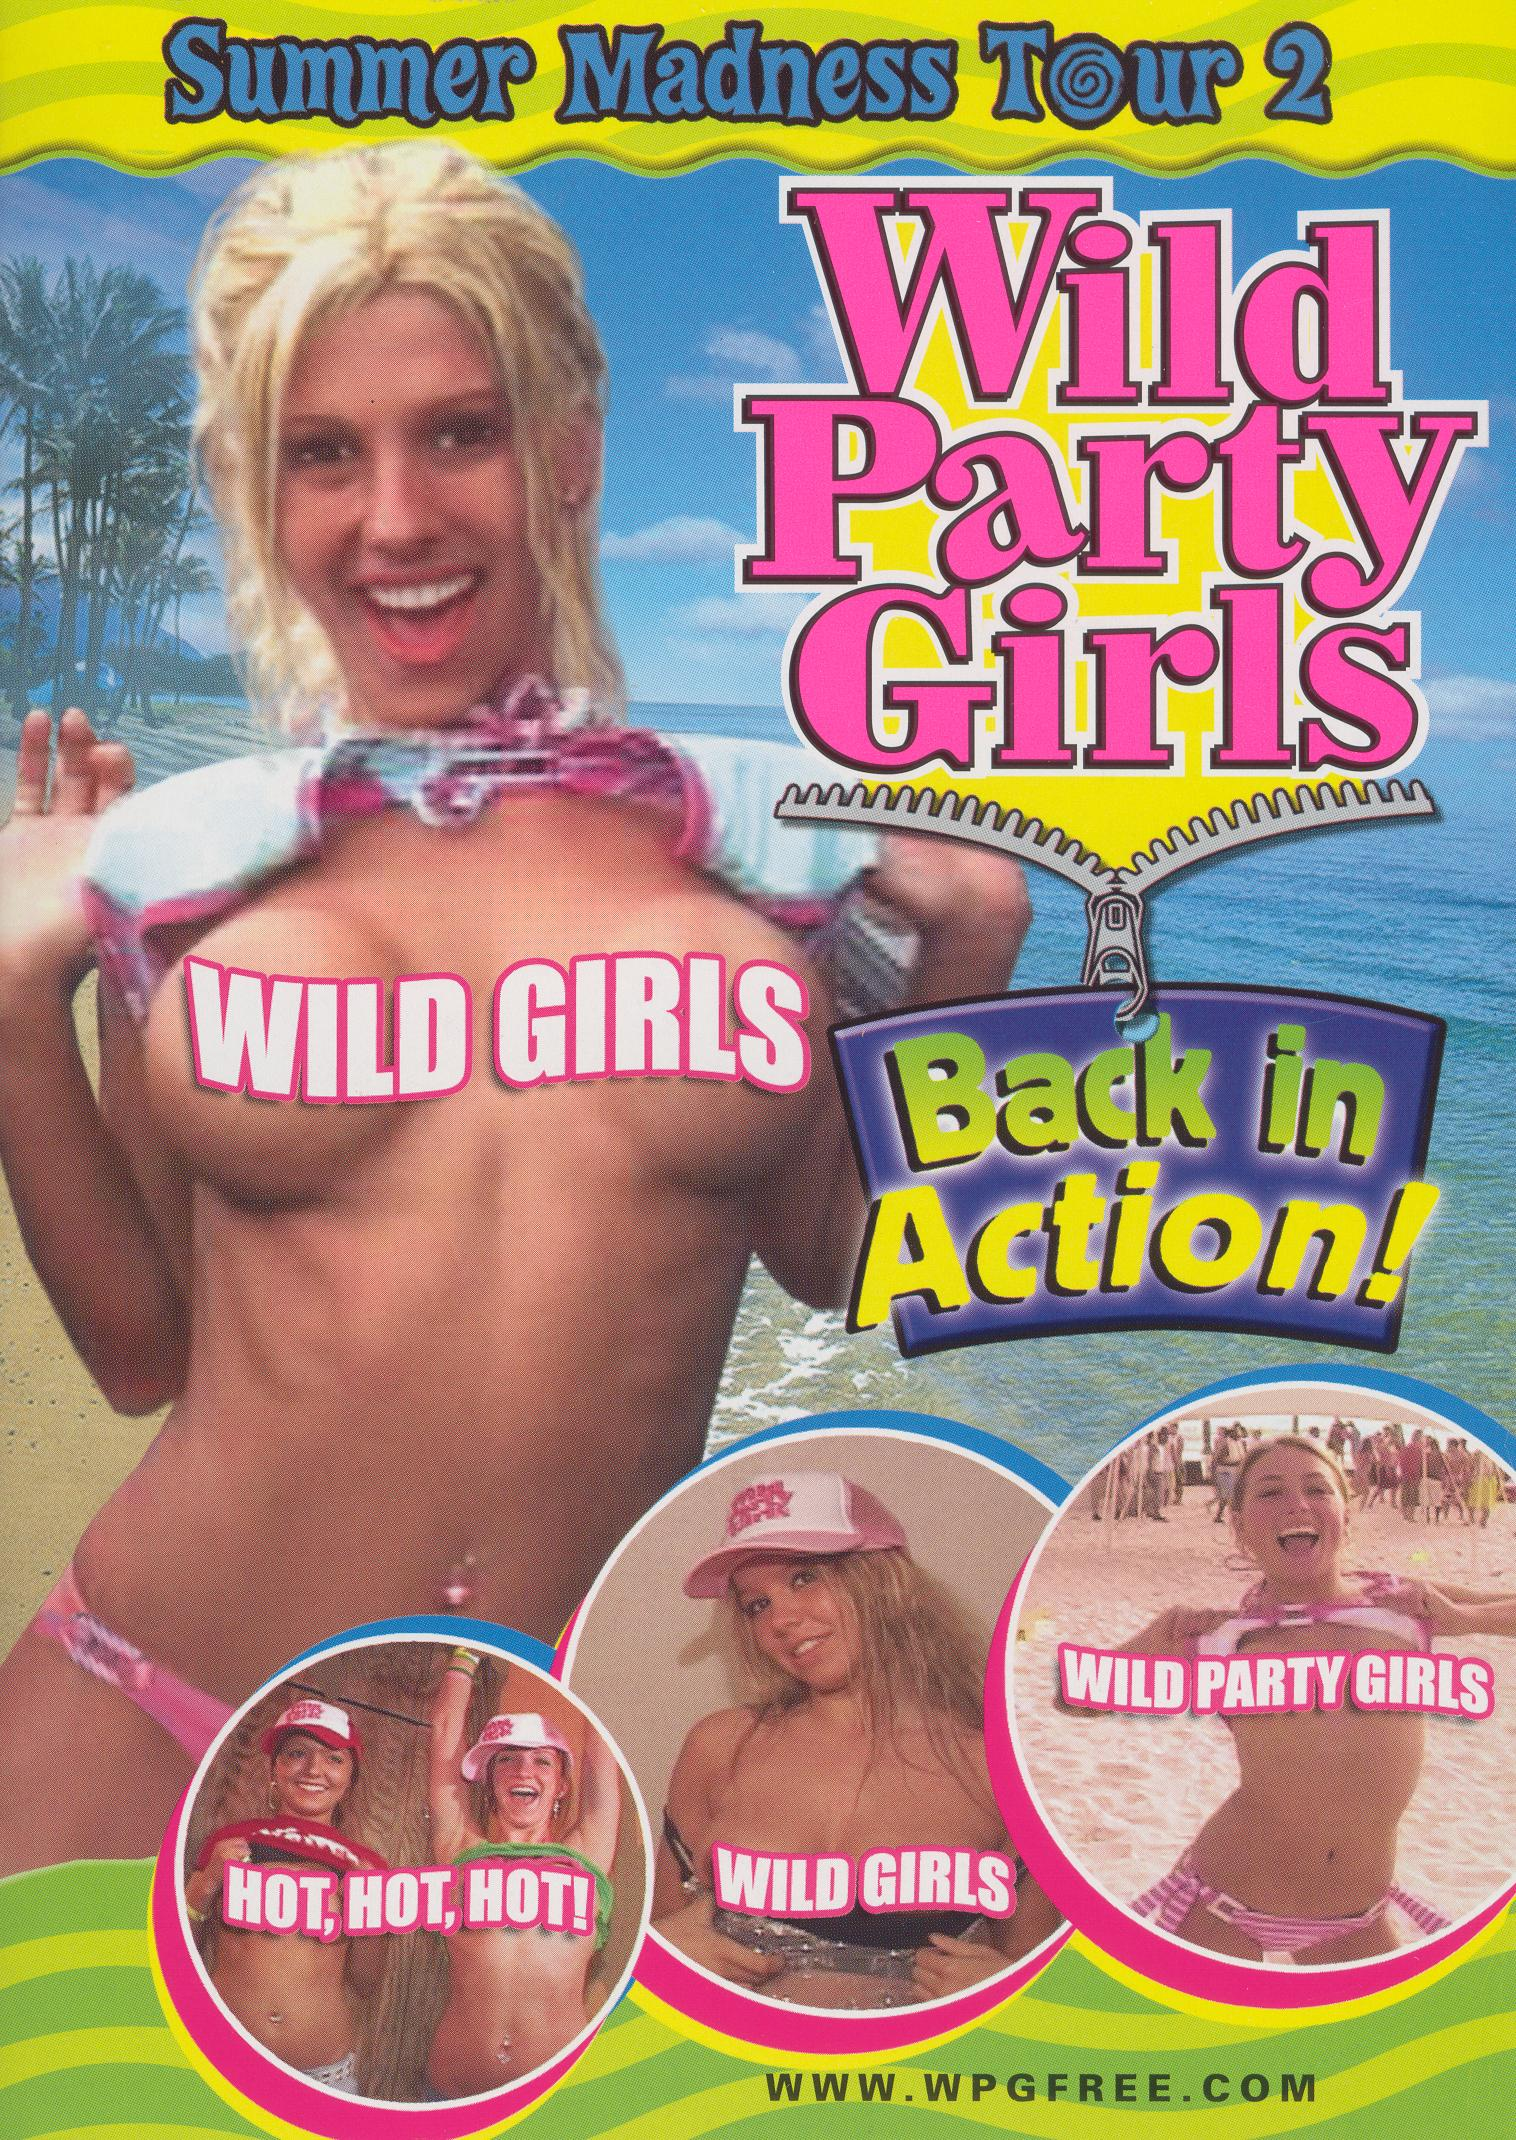 Wild Party Girls: Back in Action